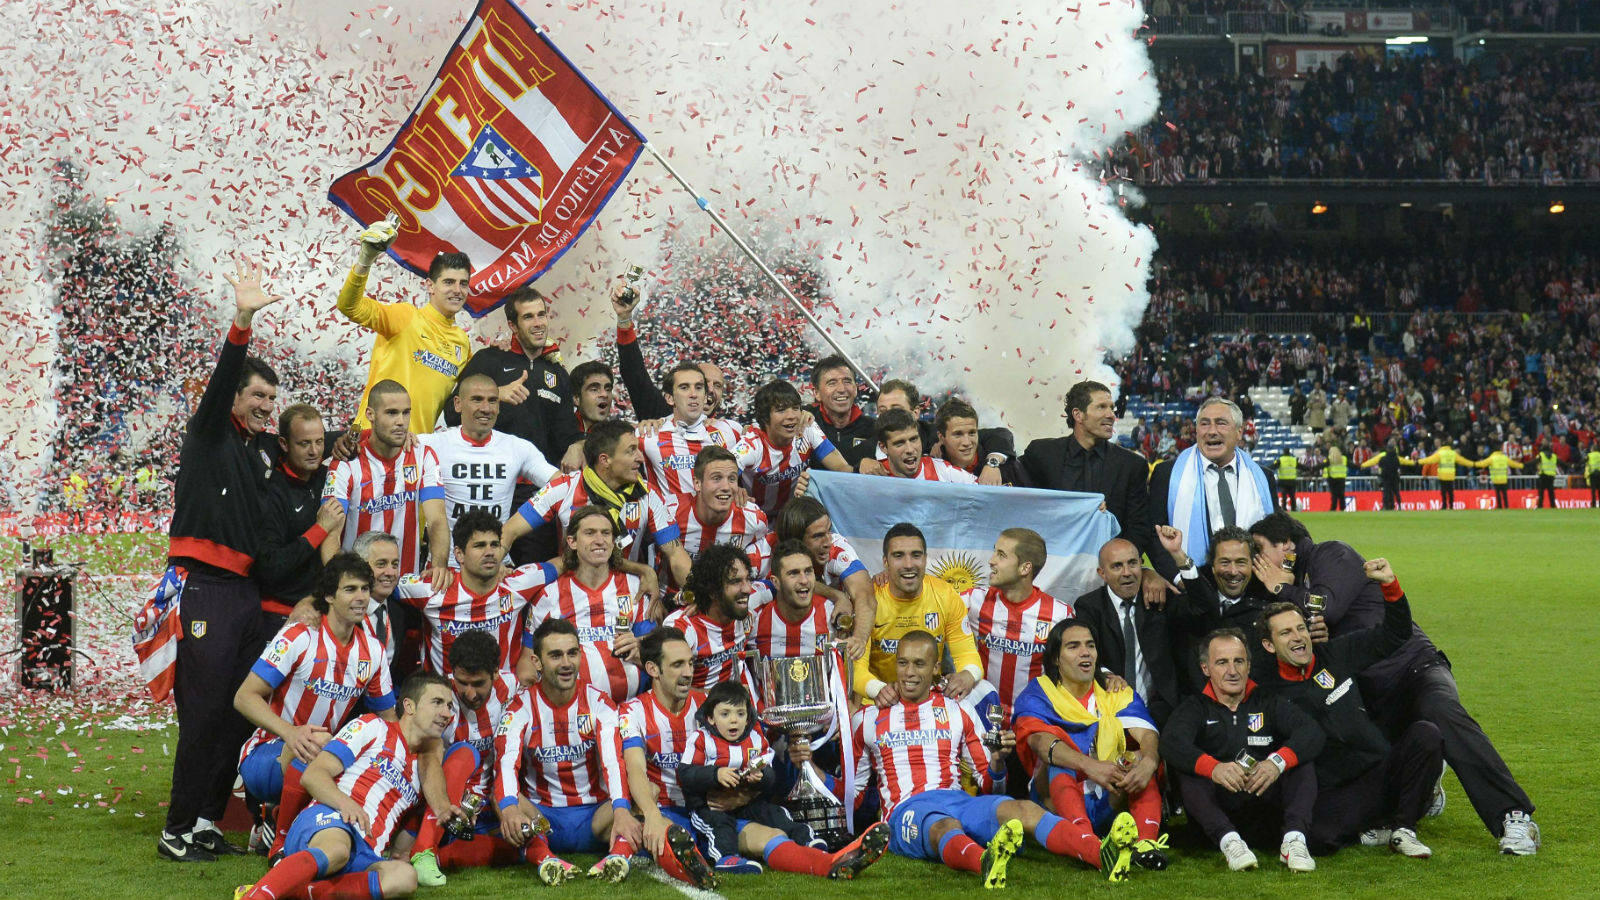 Final Copa del Rey: As lo celebr el Atltico